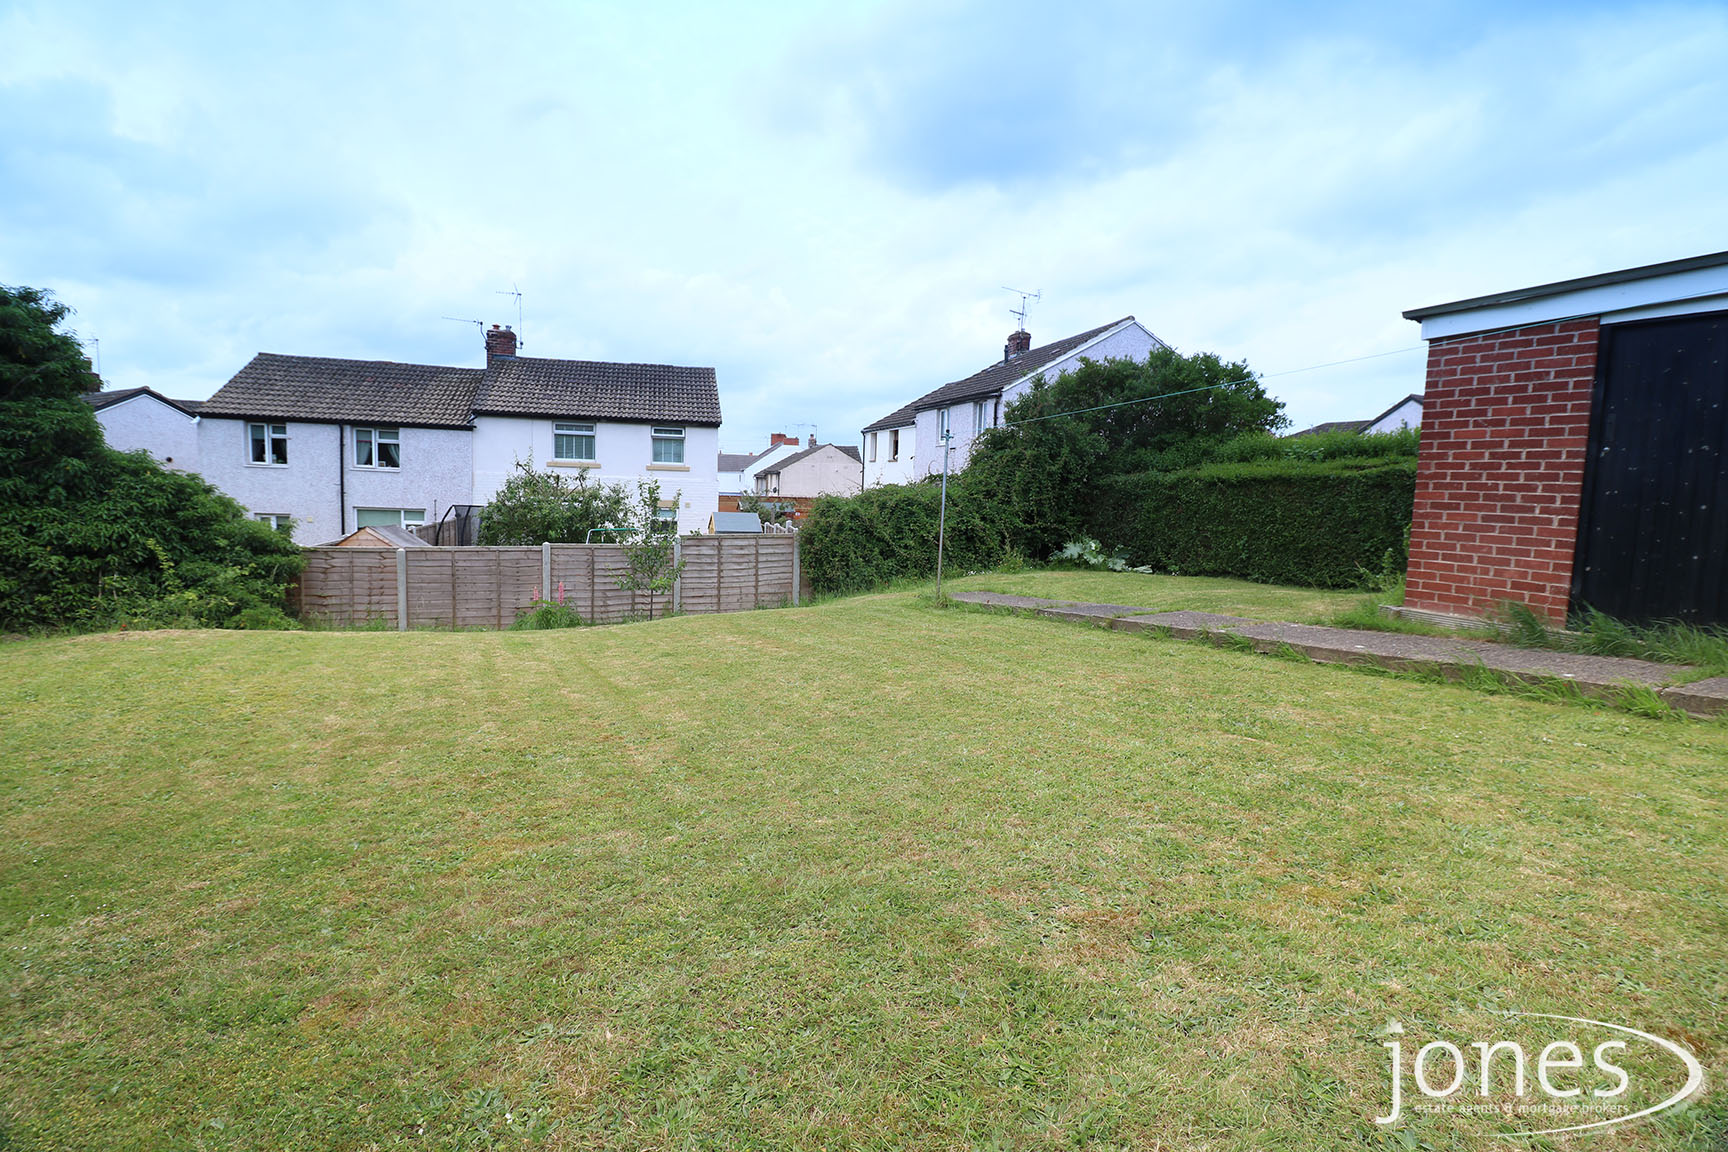 Home for Sale Let - Photo 10 Mill Crescent, Whitwell, Worksop, S80 4SF